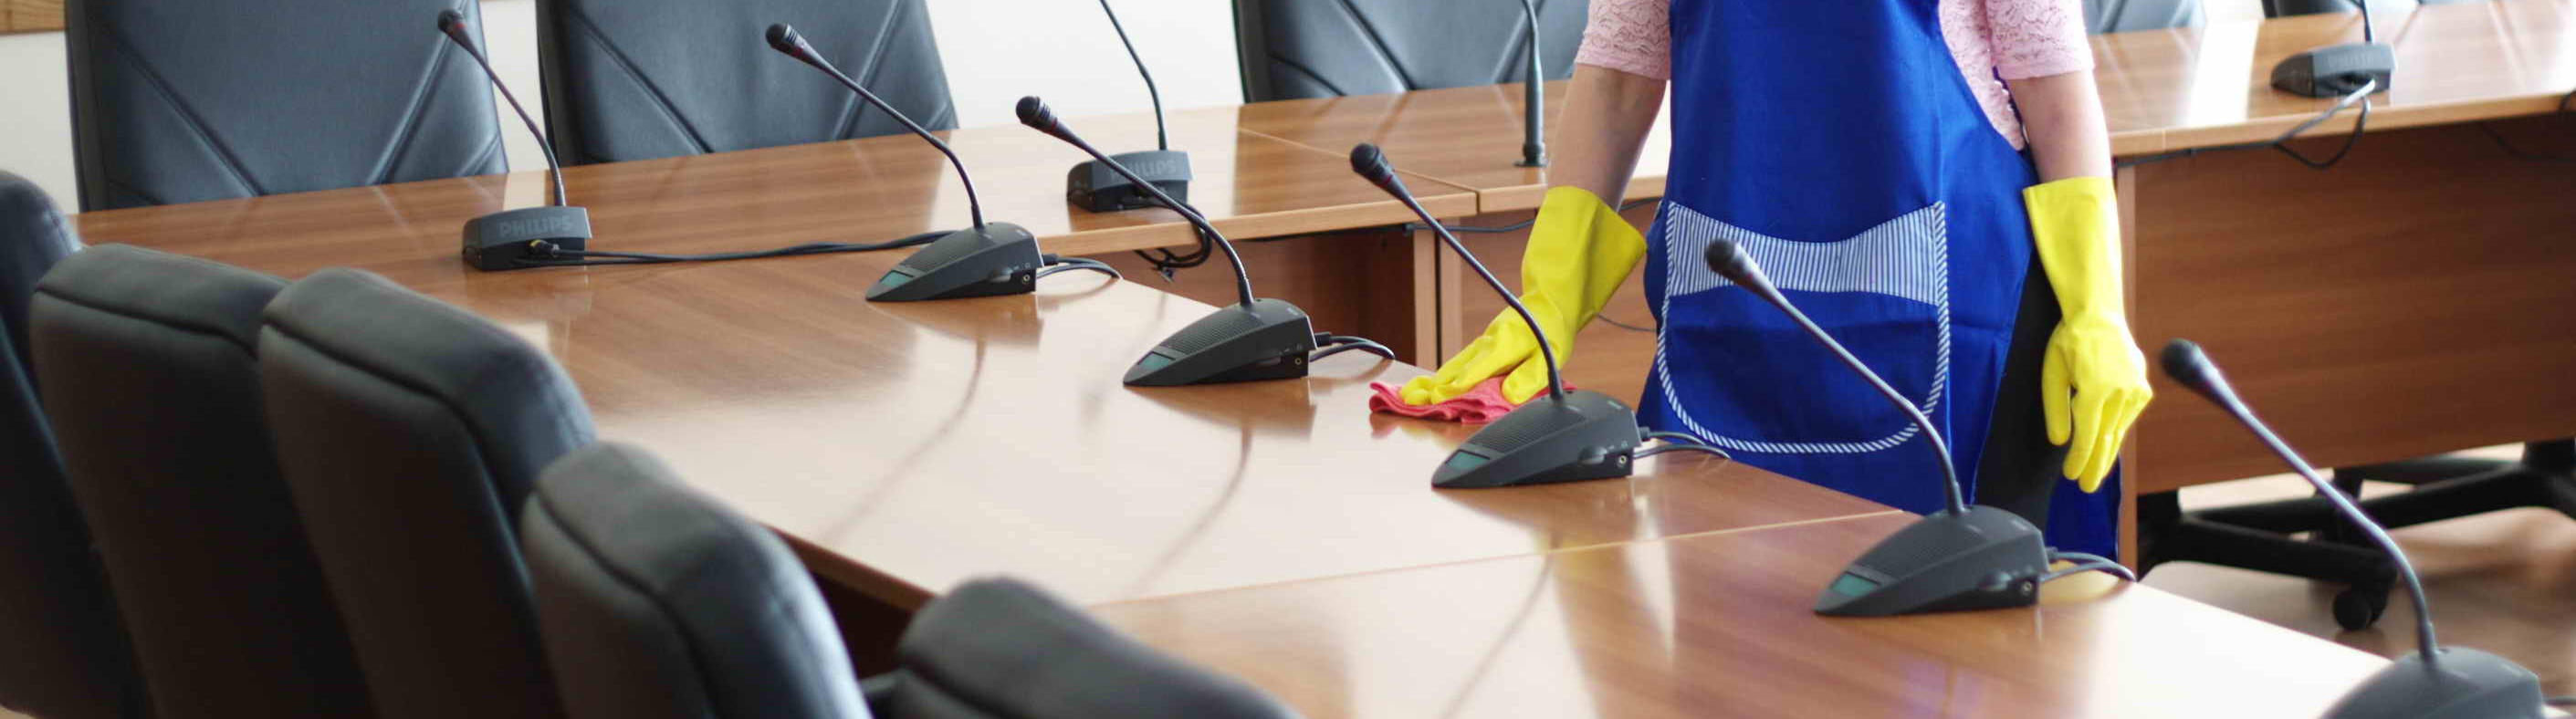 Business cleaning services.